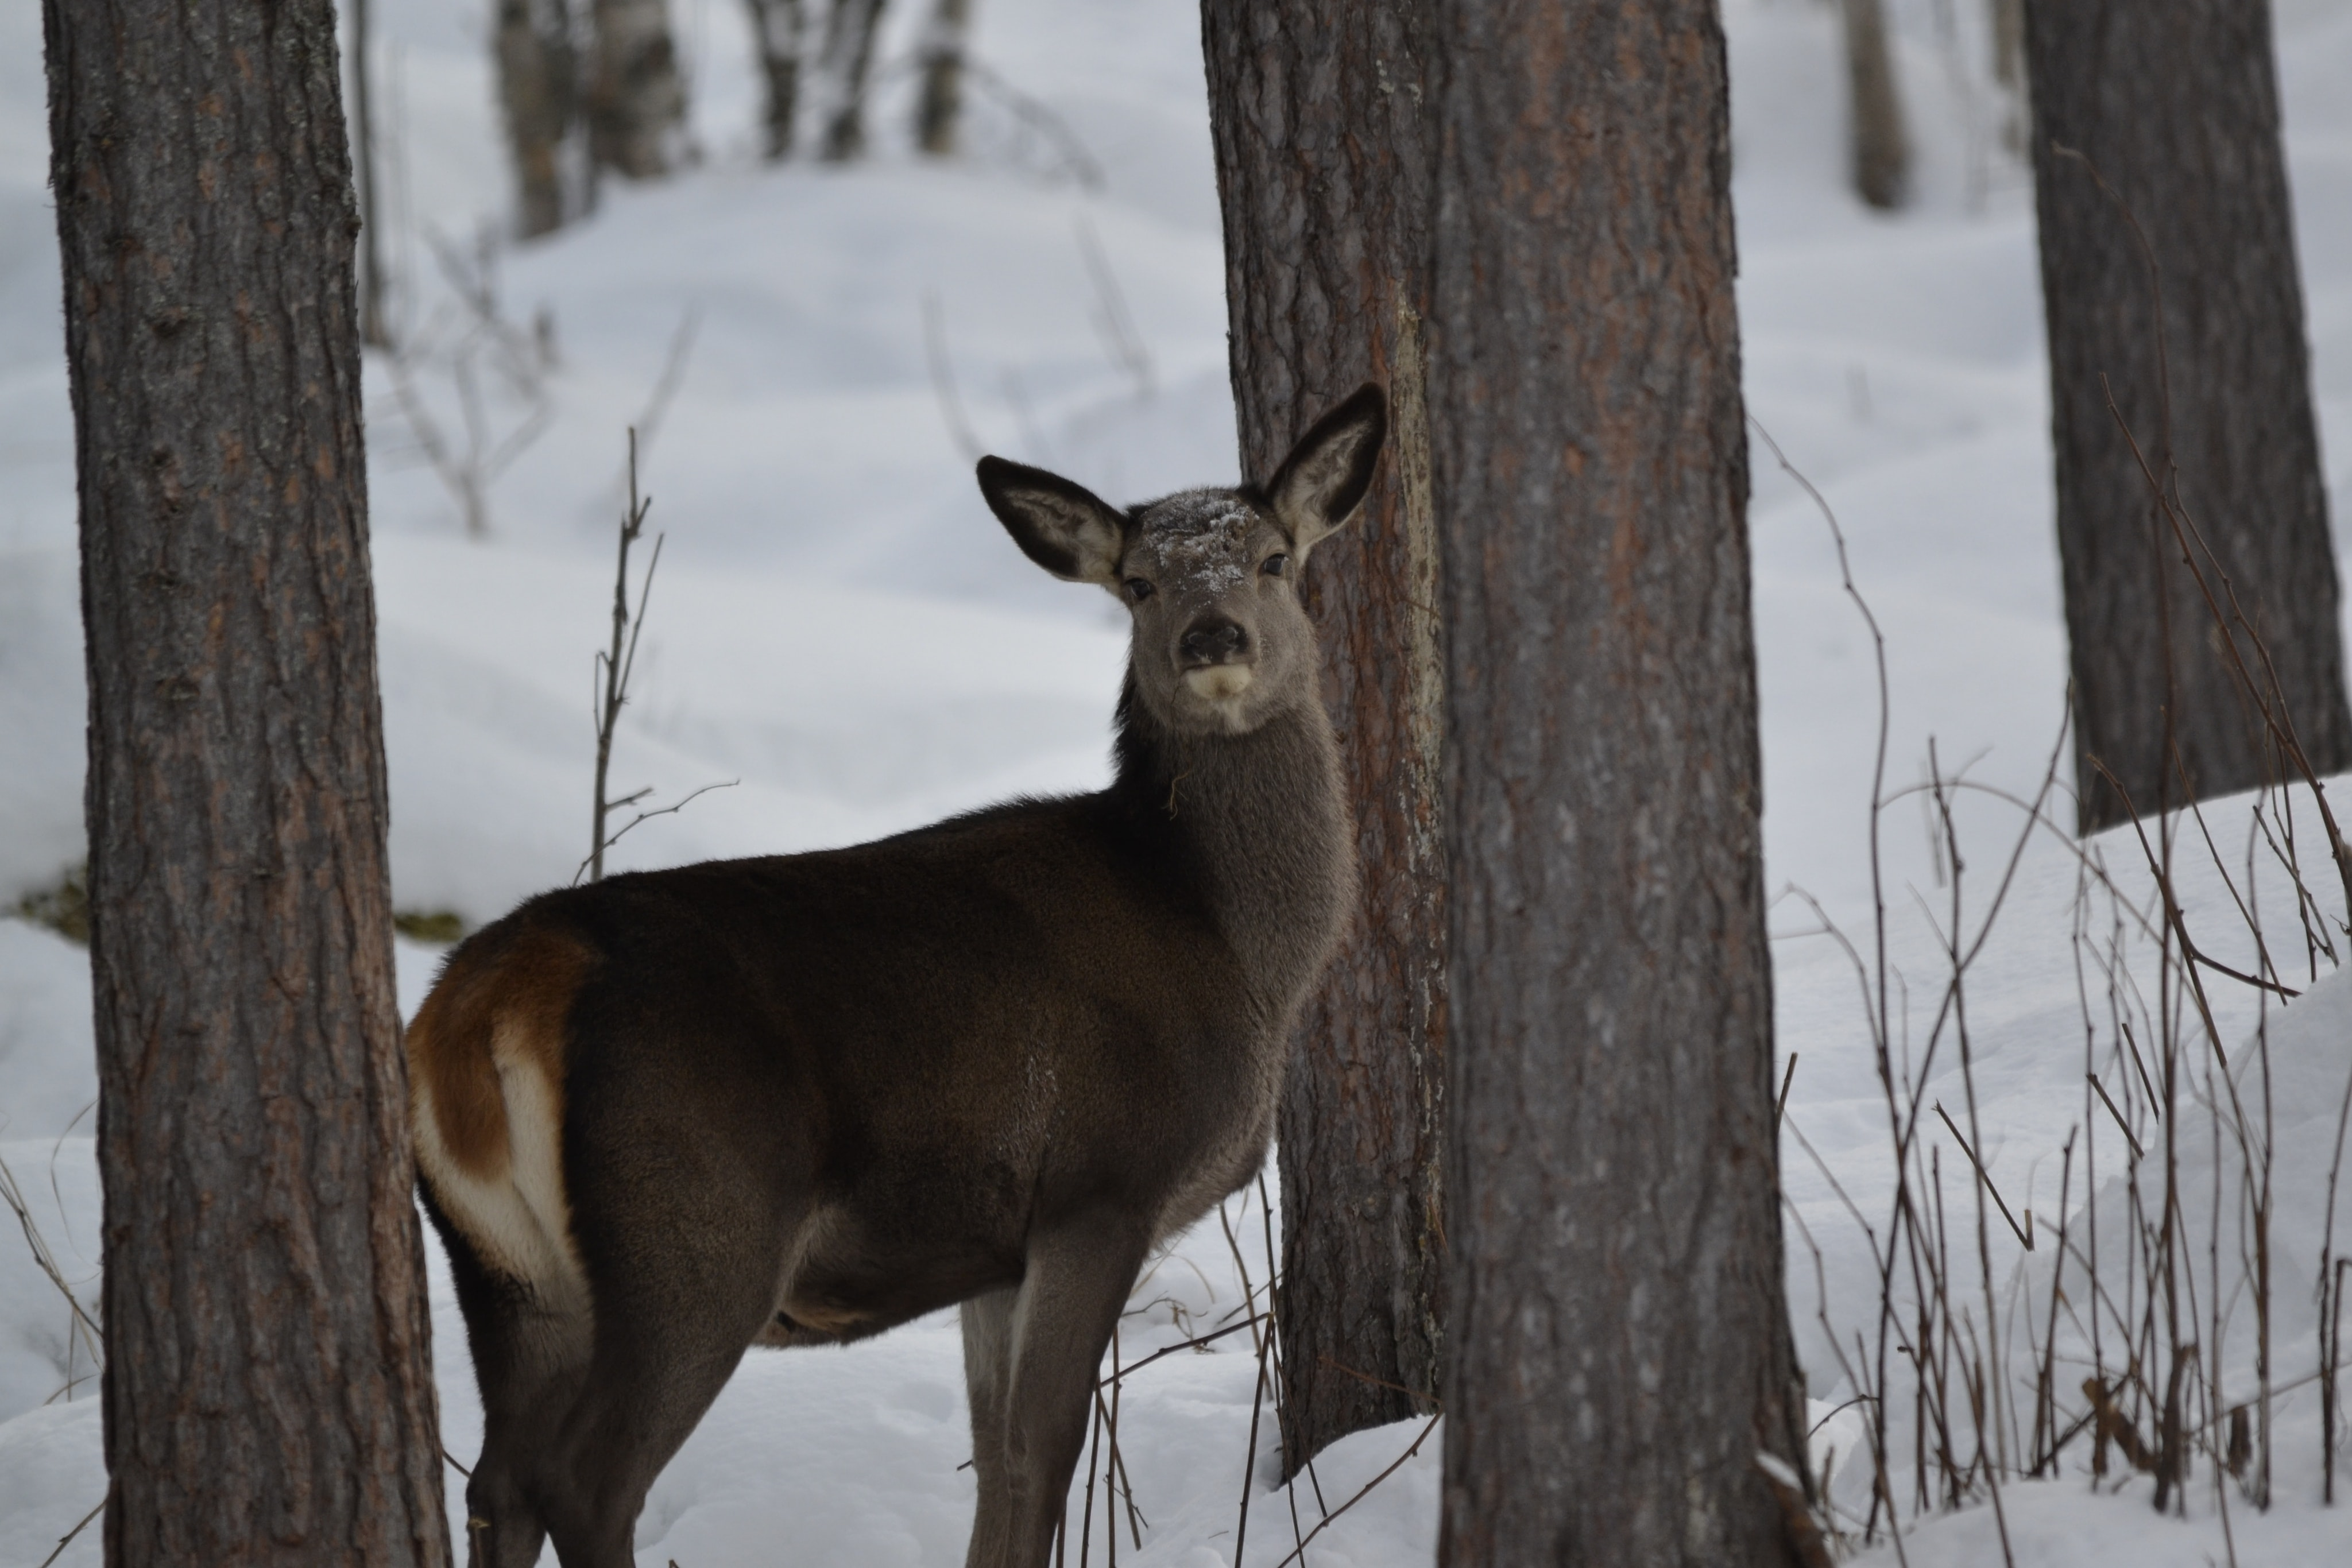 A deer stopped in its tracks in the cold winter forest.